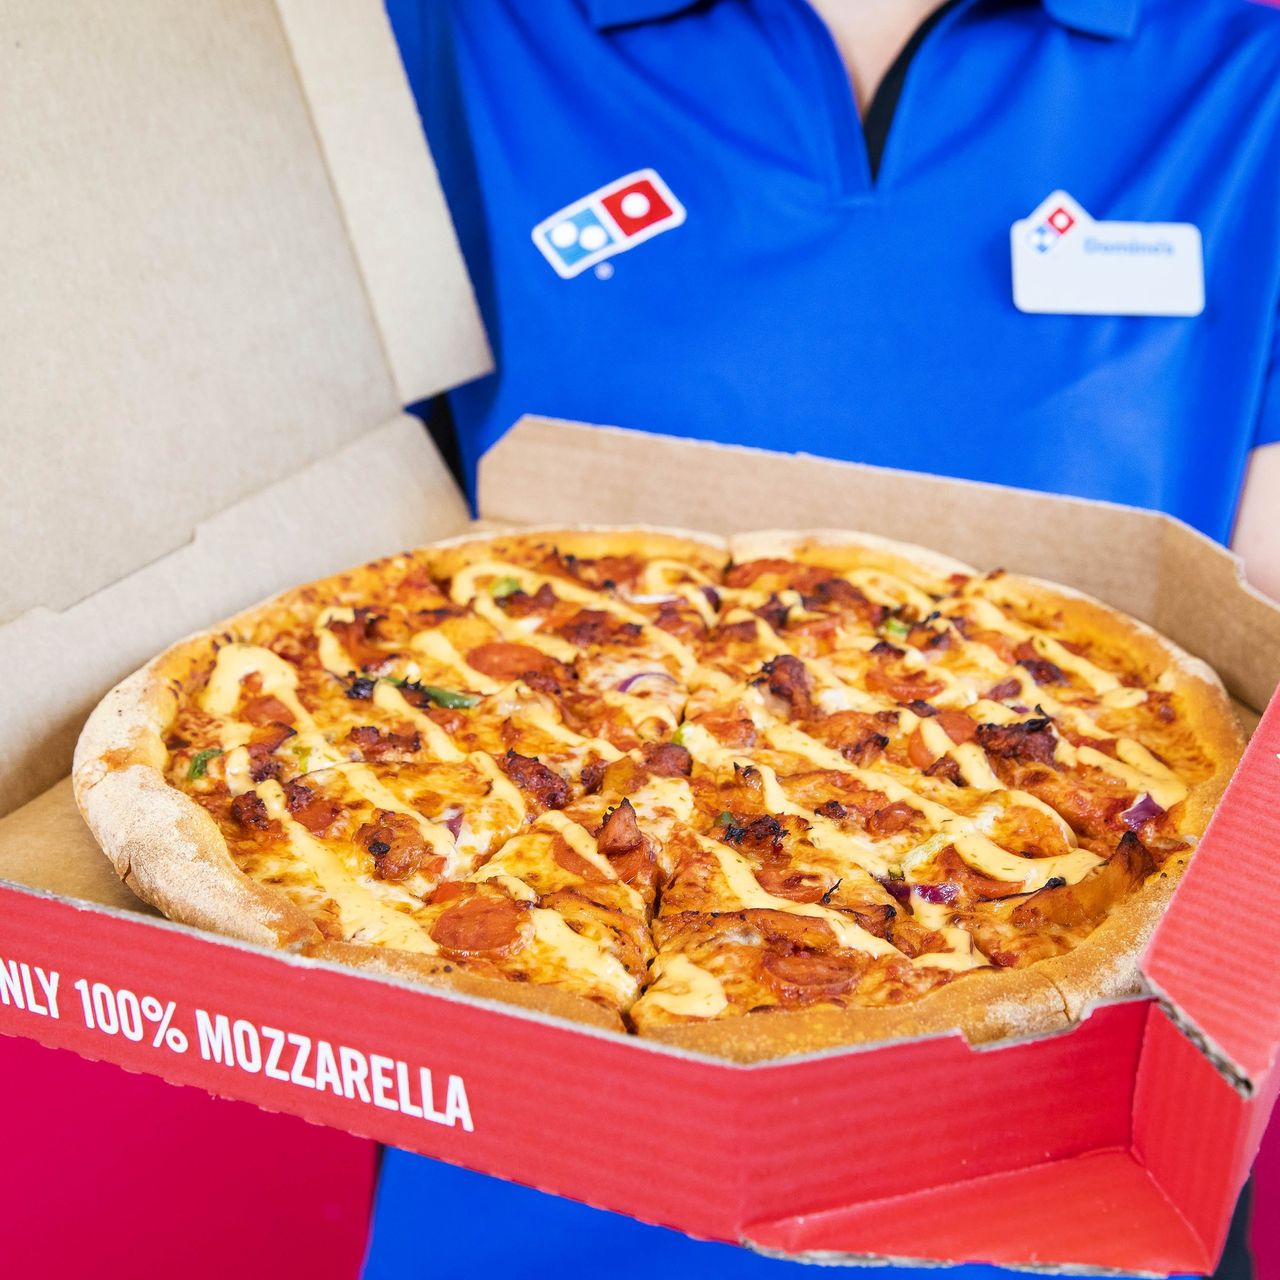 EDITORIAL USE ONLY To celebrate Valentine's Day, Domino's has introduced a new Mediterranean-inspired Catalan Chicken & Chorizo pizza to its menu, as it expects over 300,000 pizzas to be ordered for the occasion and around 500 orders a minute during the dinner time peak.